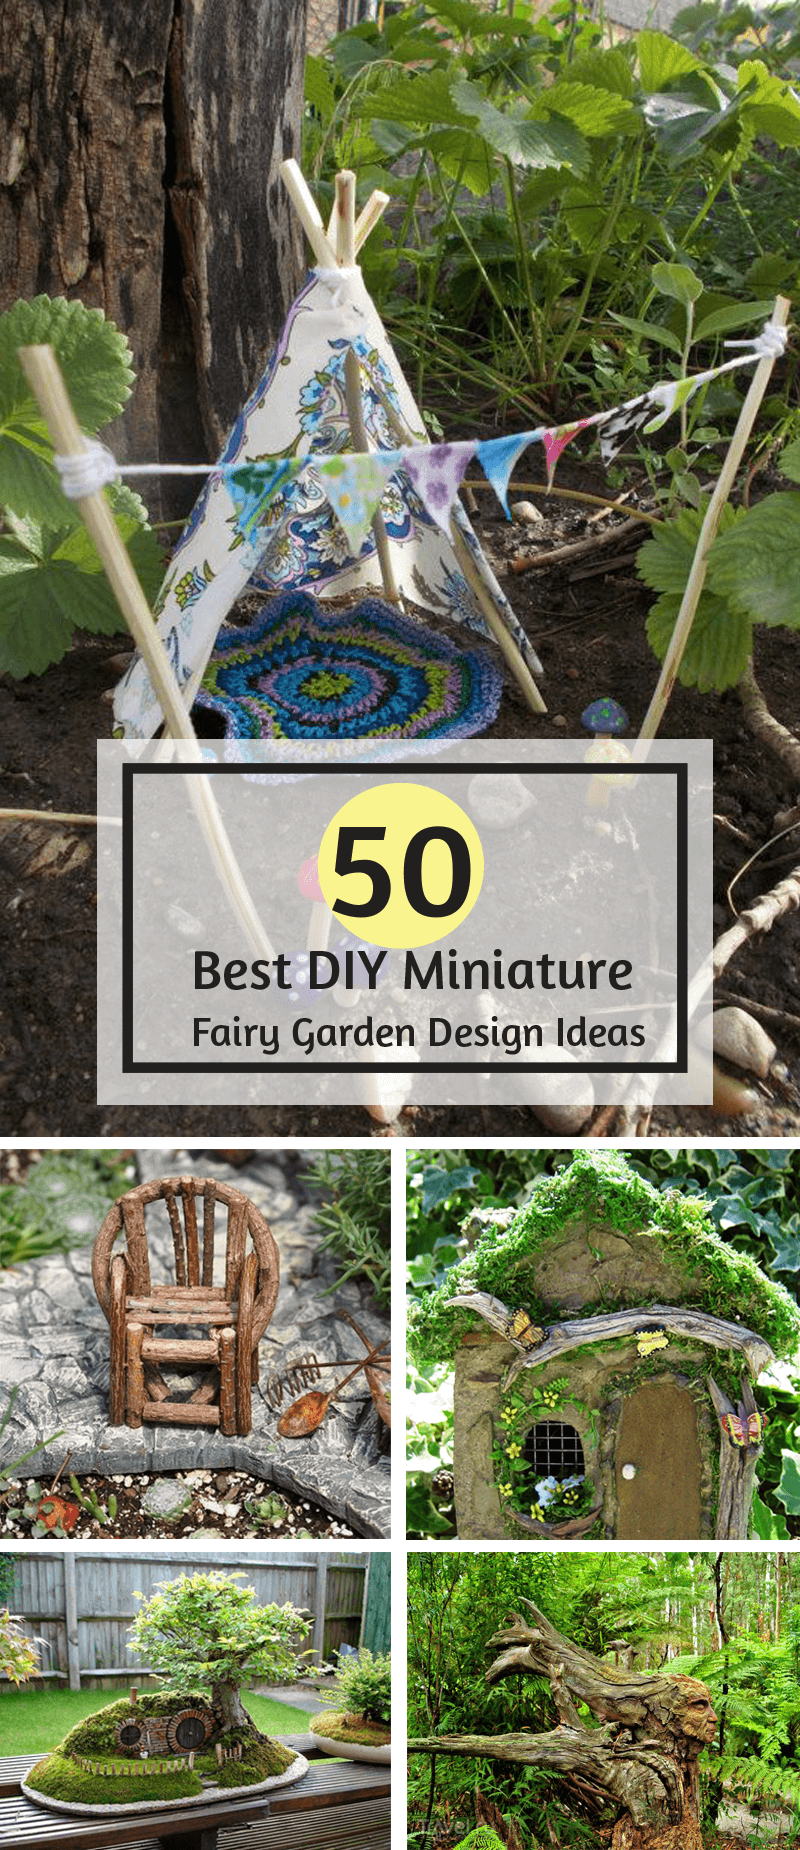 50 best diy miniature fairy garden design ideas to decor your garden